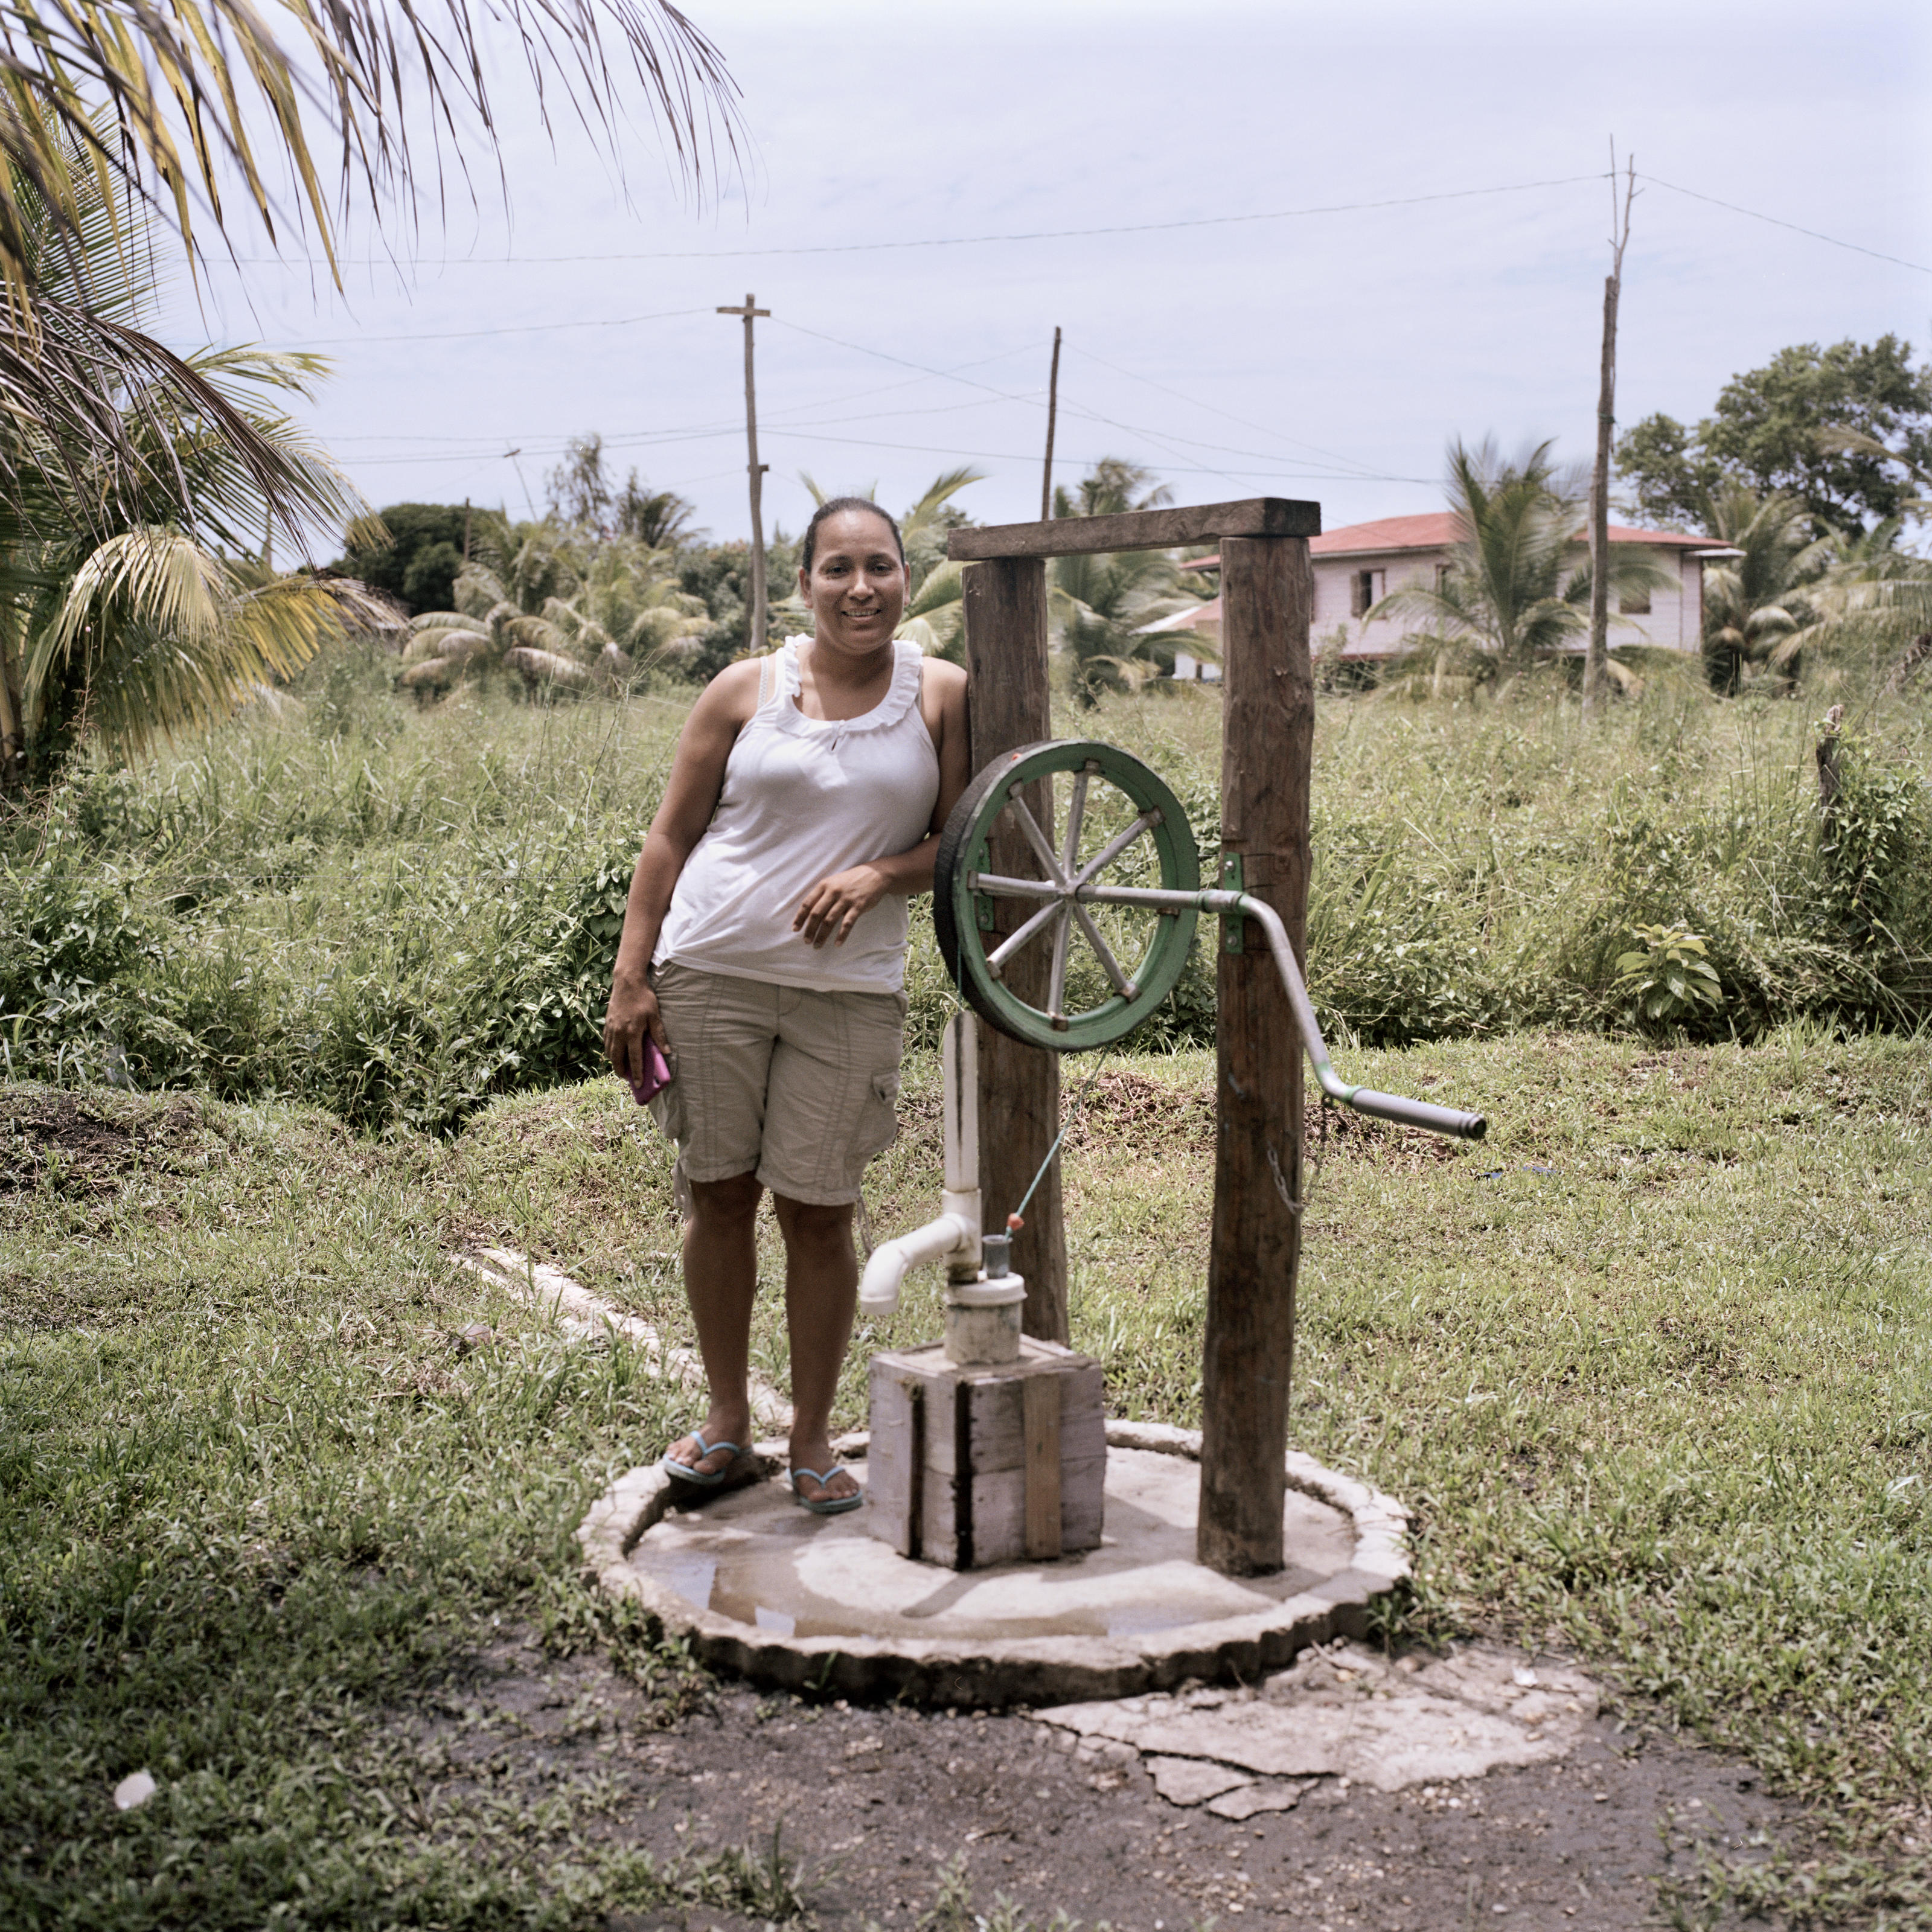 Suyen, pictured with a rope pump she bought through the scheme, in Bilwi, Nicaragua, August 2015.